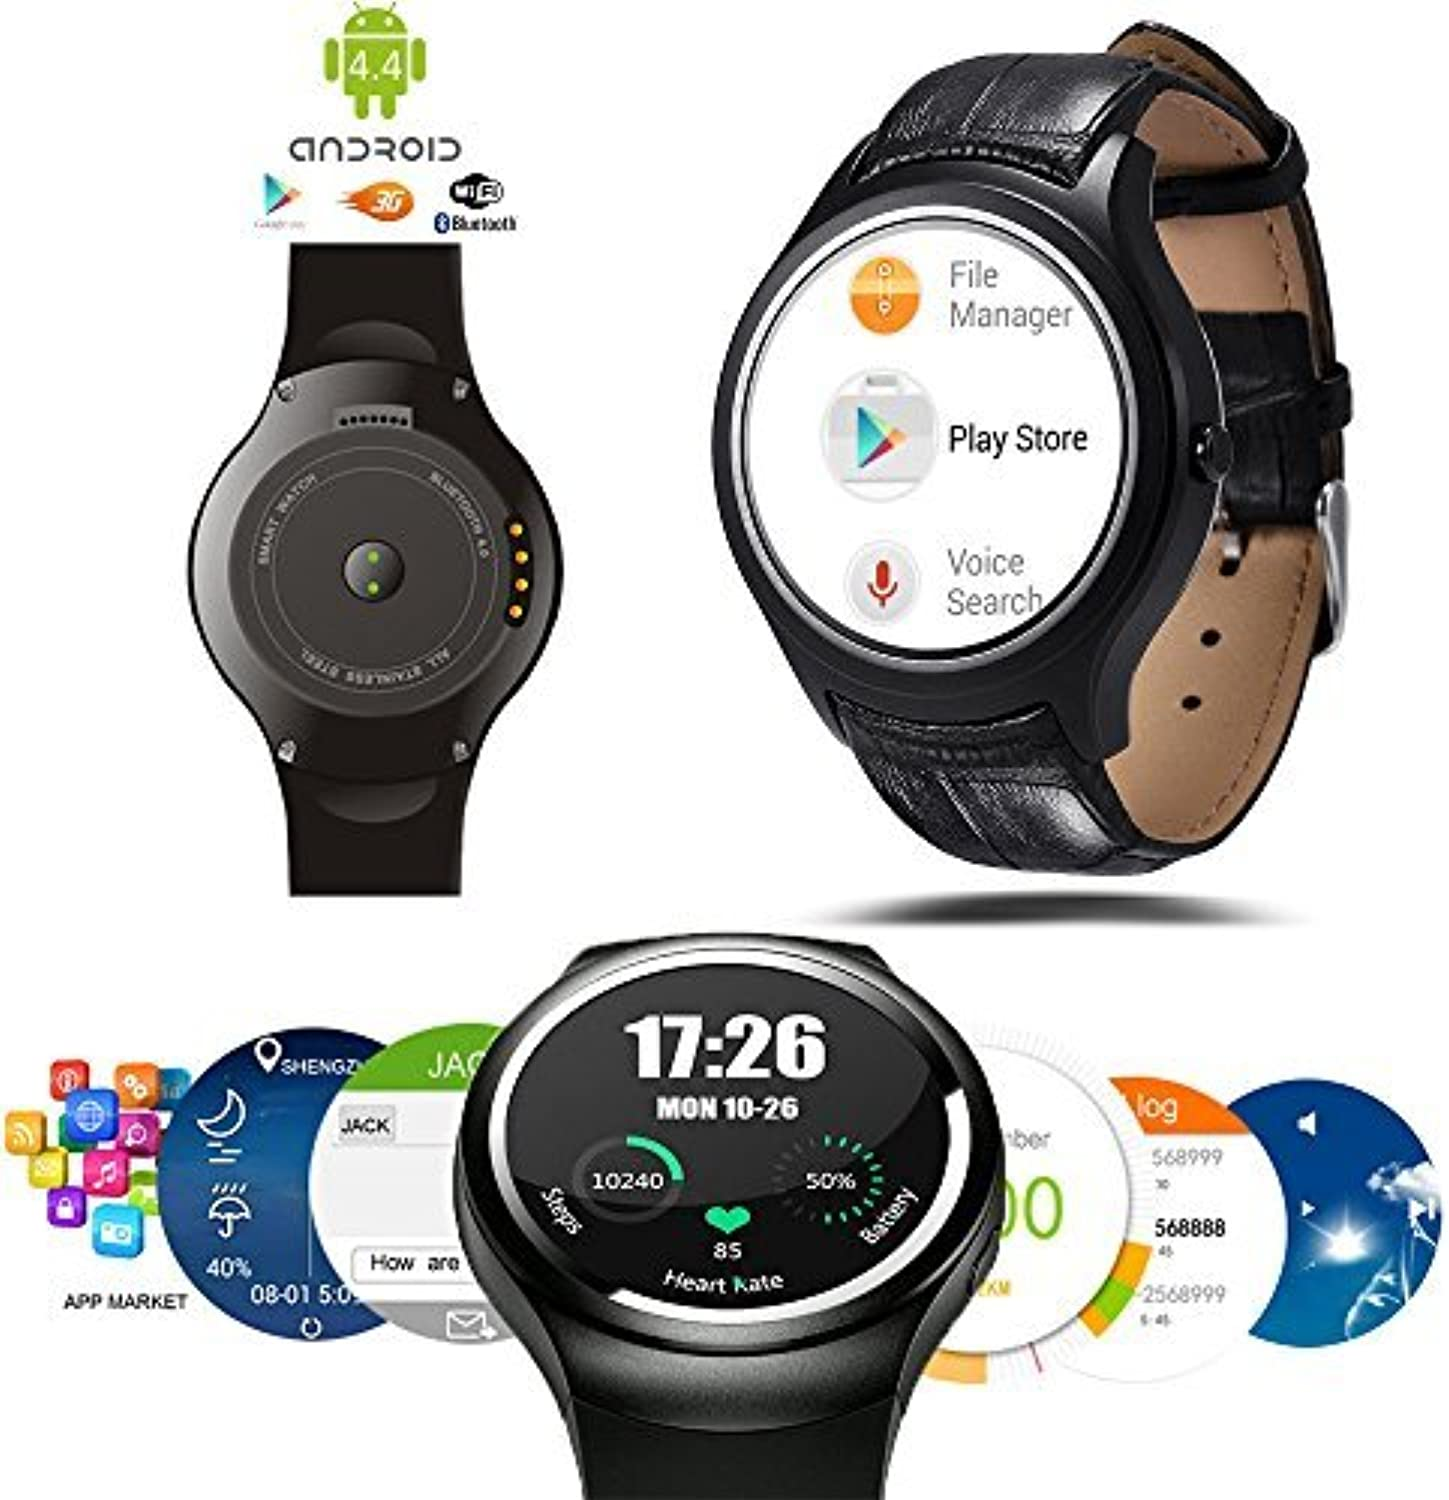 Indigi Allweather Android 4.4Smart Watch (3G + WiFi) Google Play Store Google Map Wettervorhersage heart-rate Monitor